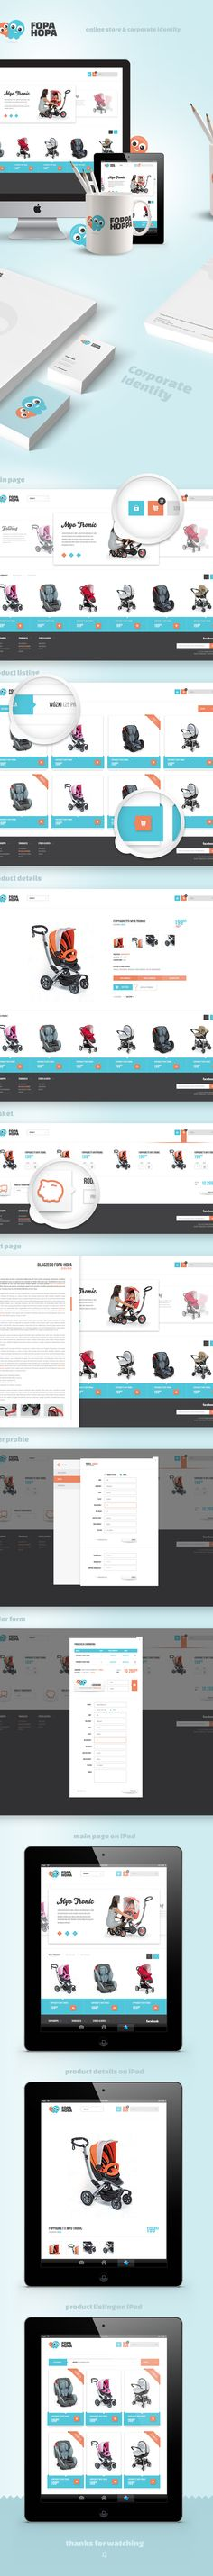 Fopahopa - Baby Store by Paweł Śliwa, via Behance